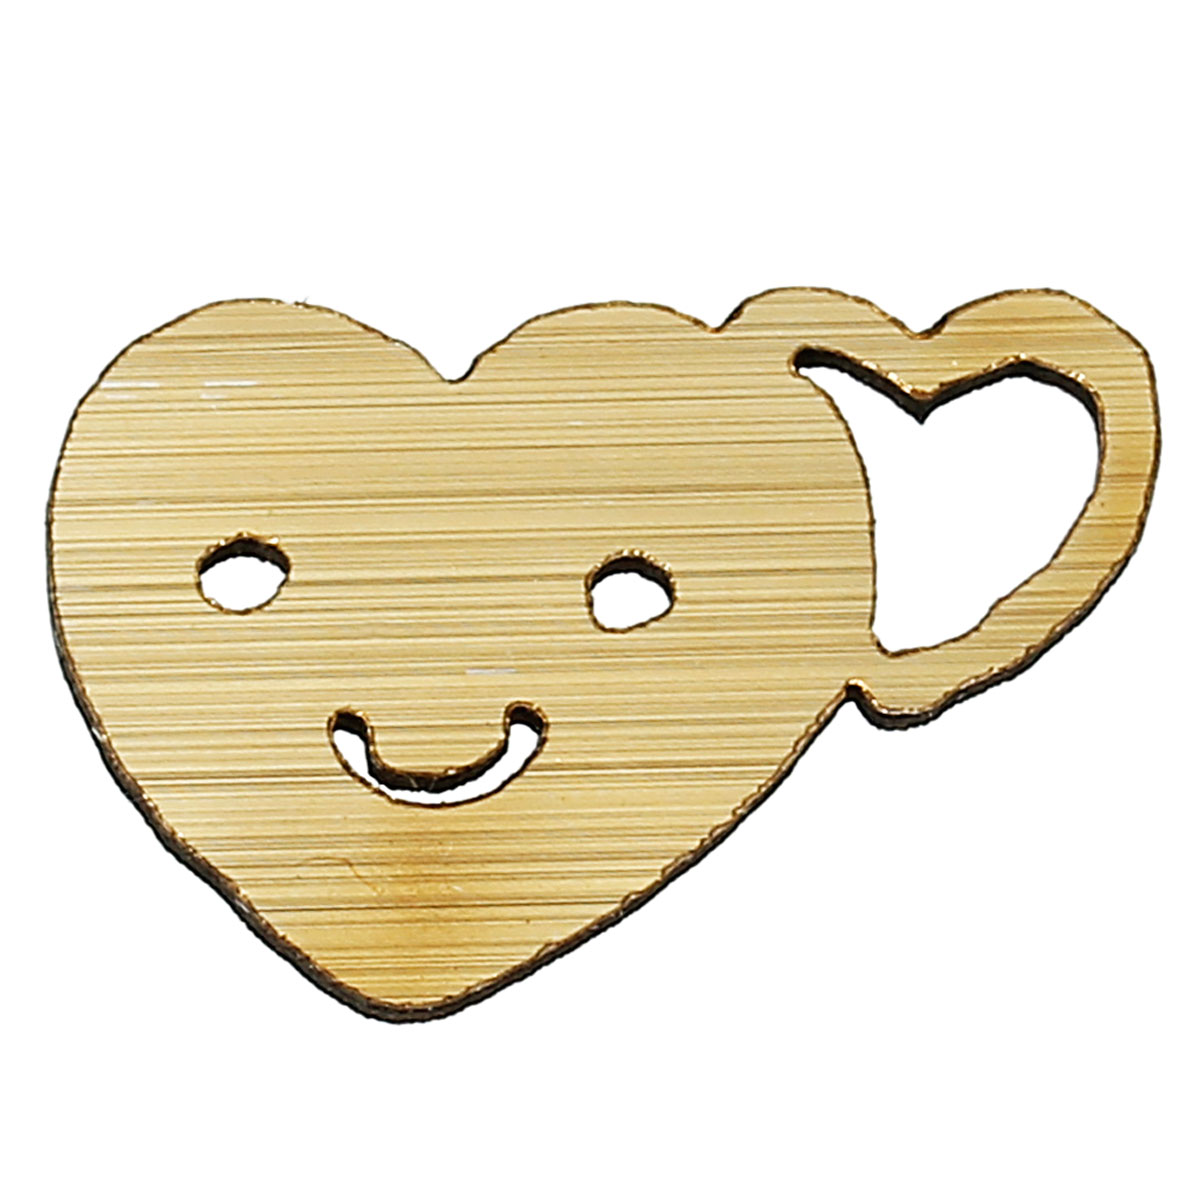 Wood Cabochons Scrapbooking Embellishments Findings Heart Golden Smile Hollow 25mm(1)x 16mm(5/8),50 PCs new